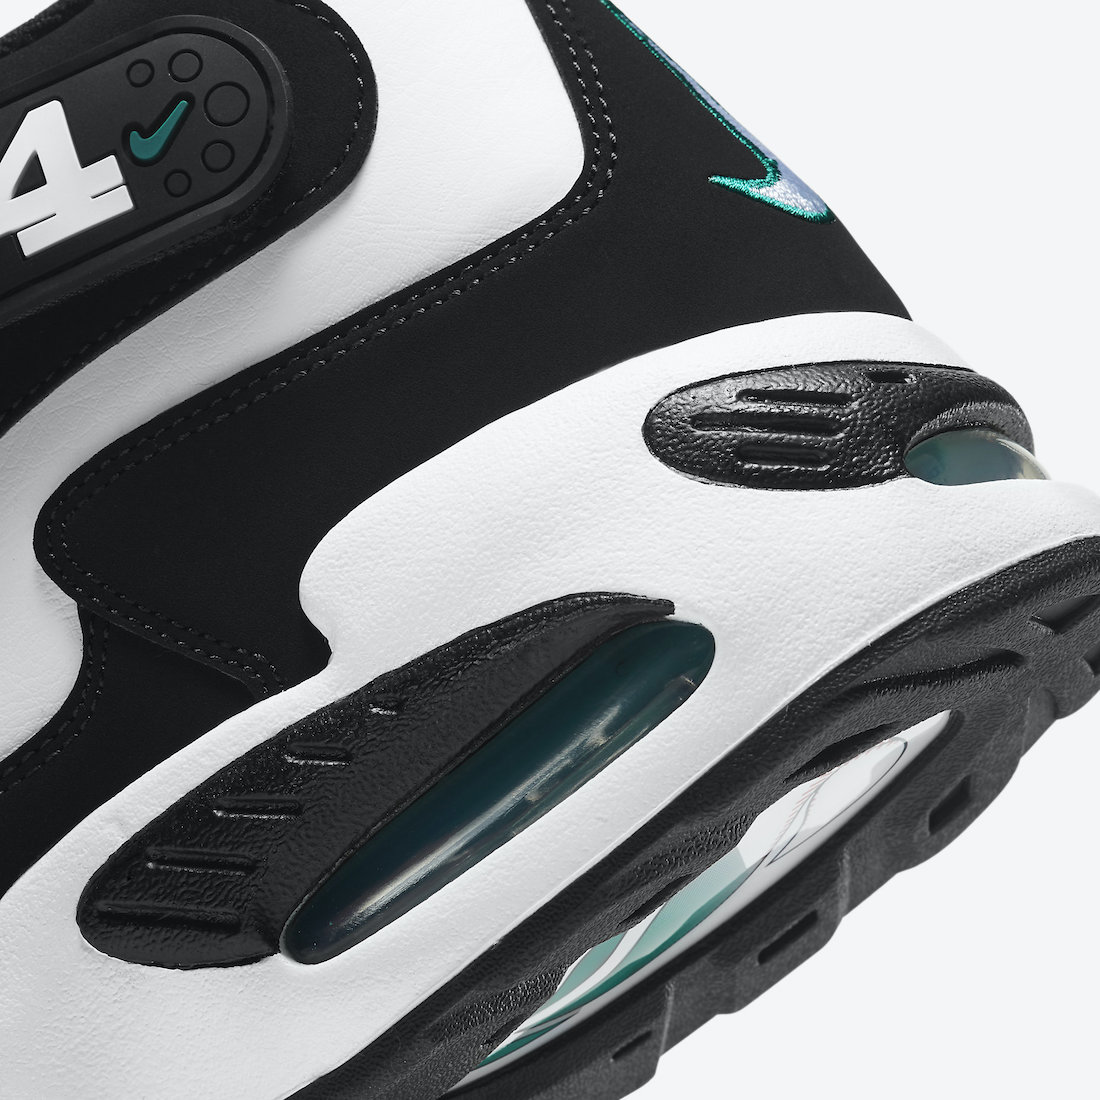 Nike-Air-Griffey-Max-1-Freshwater-DD8558-100-2021-Release-Date-7